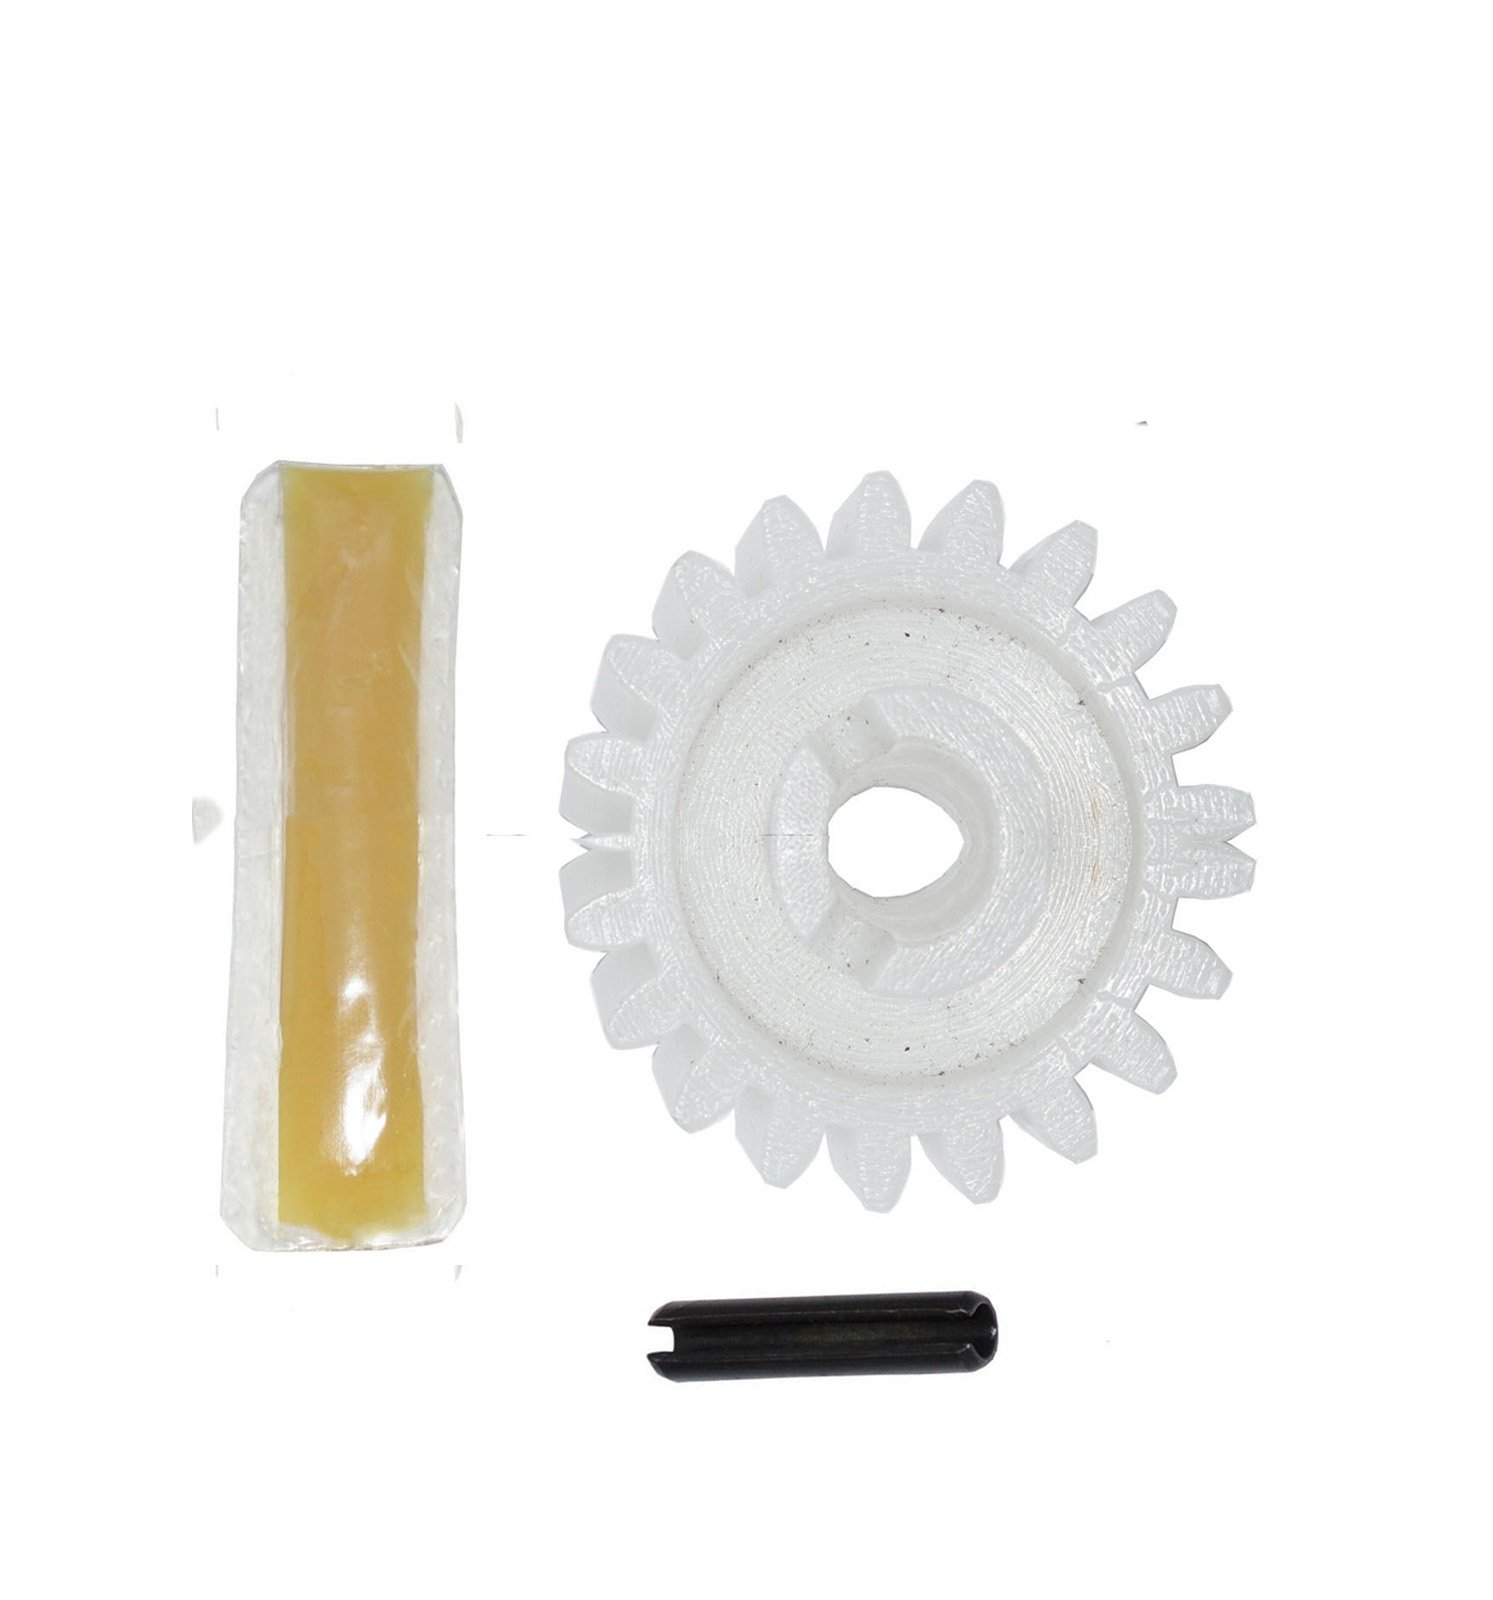 Garage Door Replacement Parts Gear for Linear Moore-O-Matic XX133 XX333 XX350